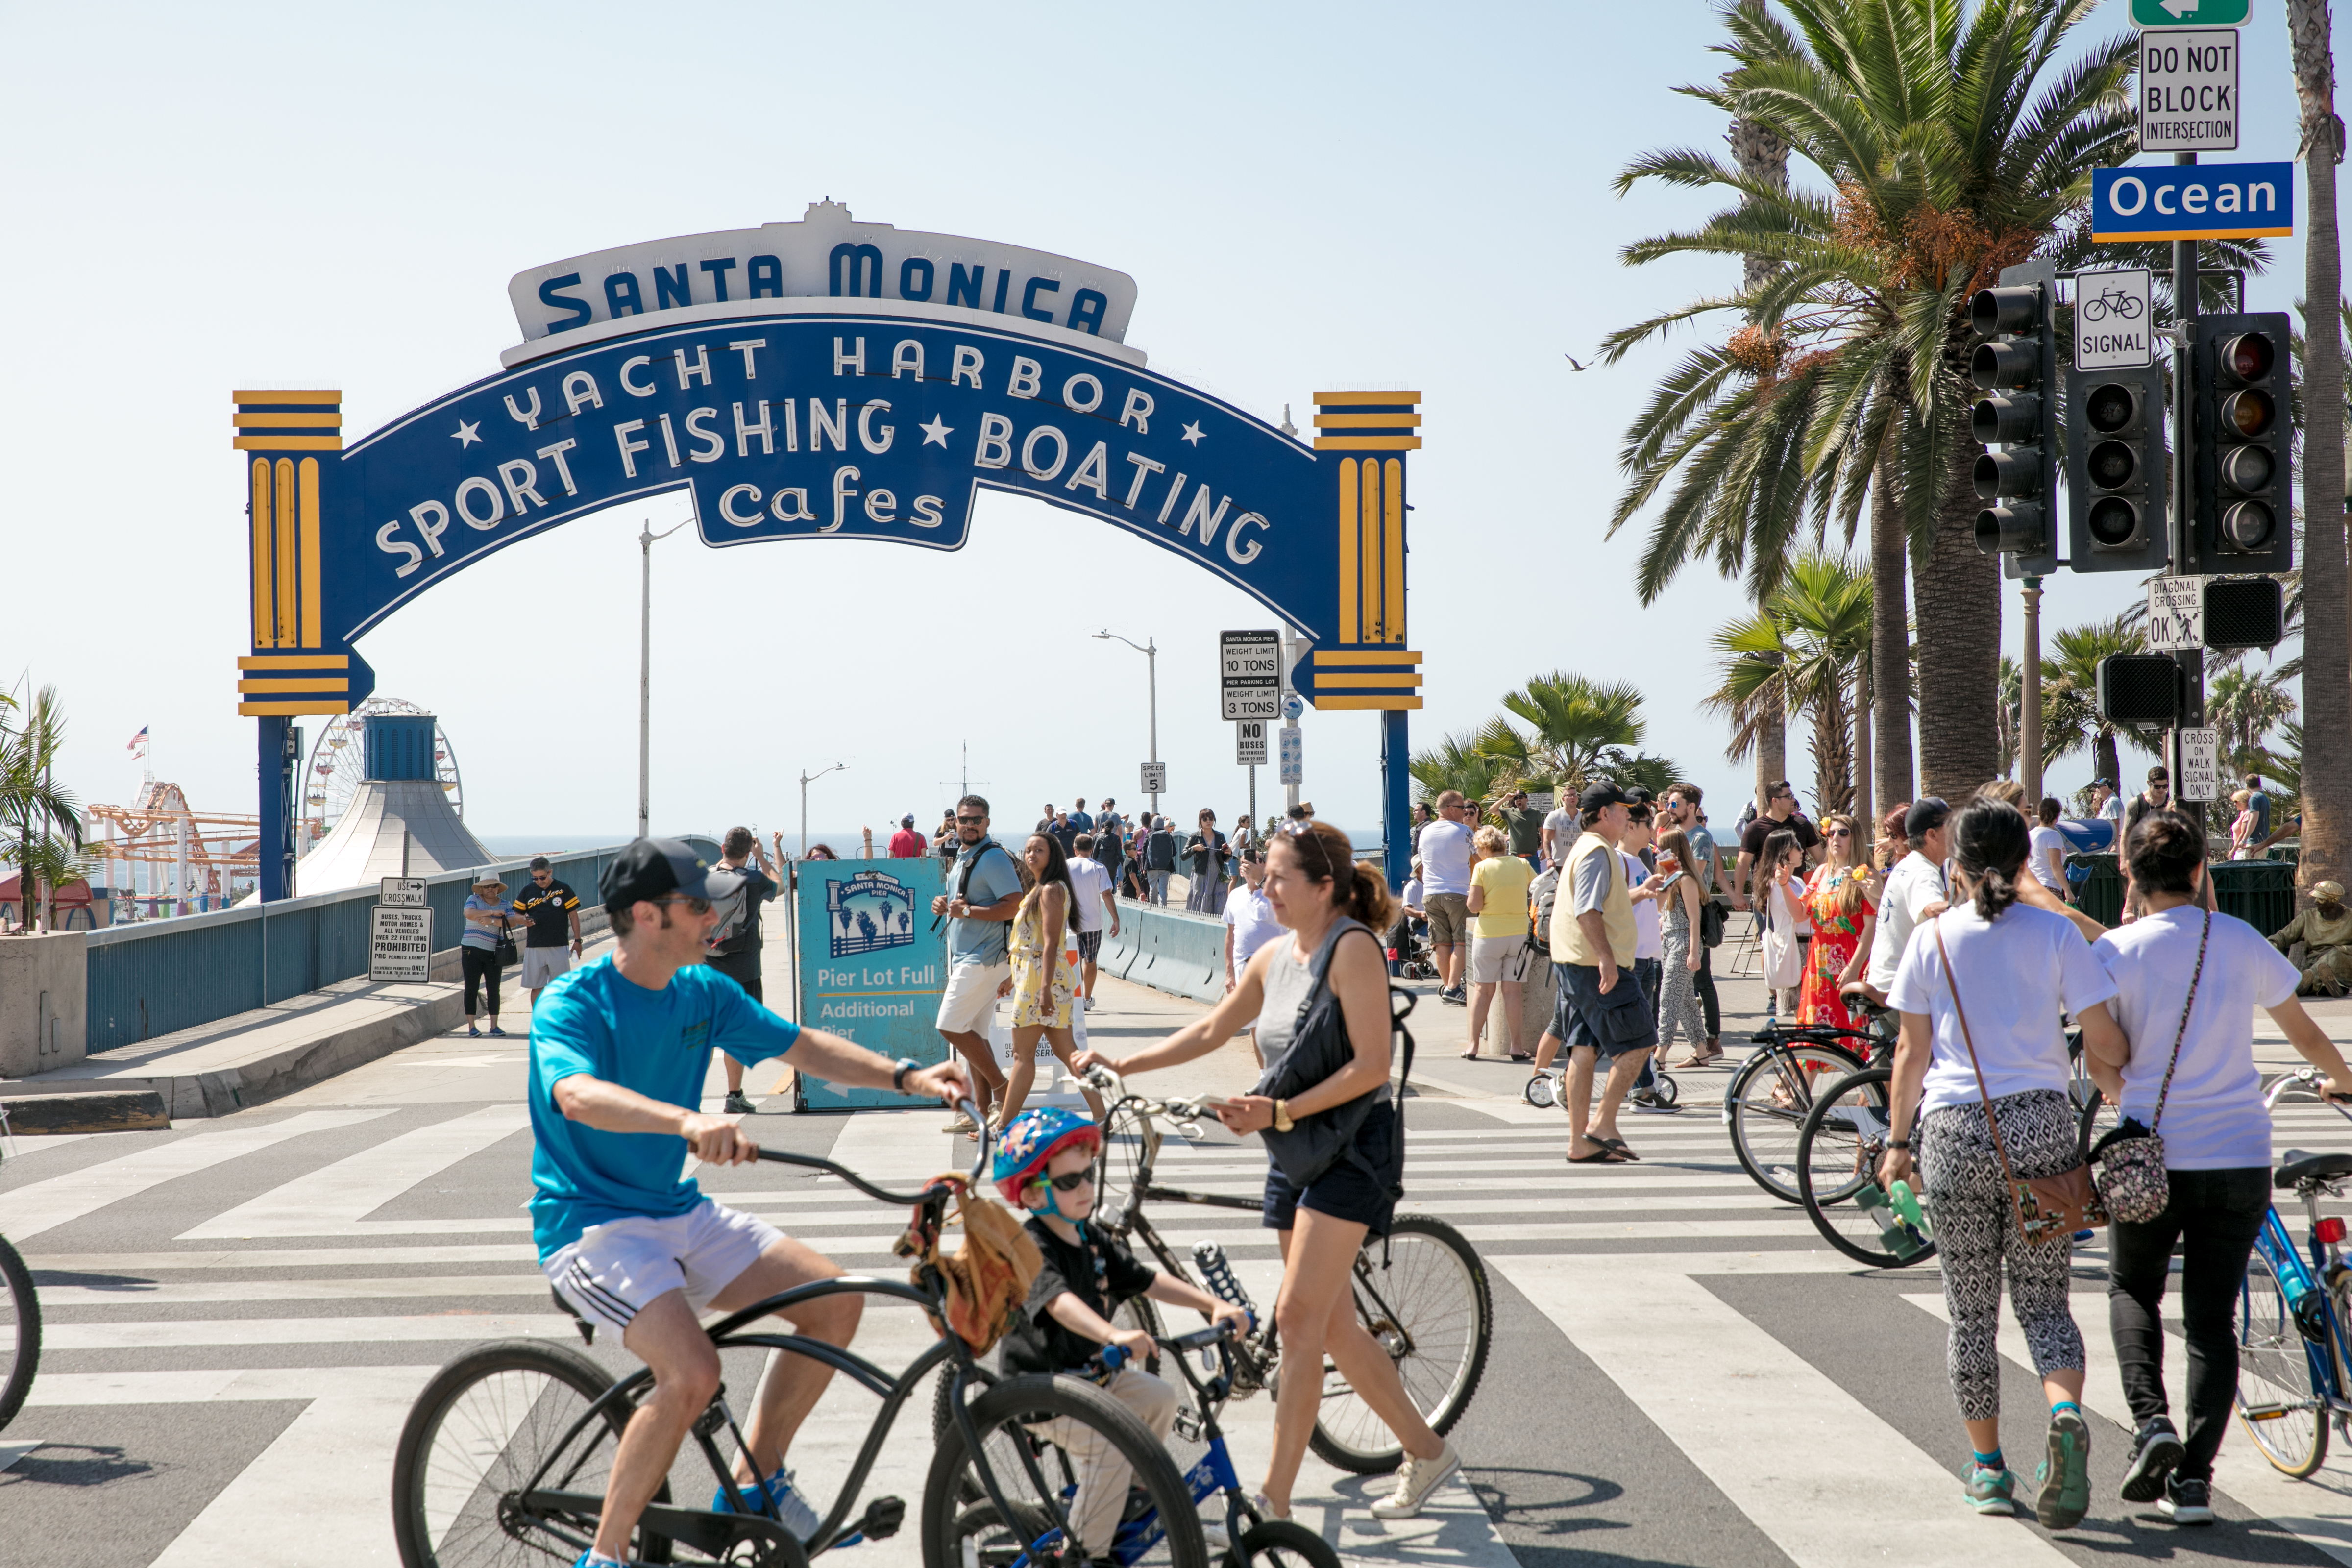 The iconic Santa Monica, California pier. William short photography. Photo (c) Santa Monica City. Used with permission.